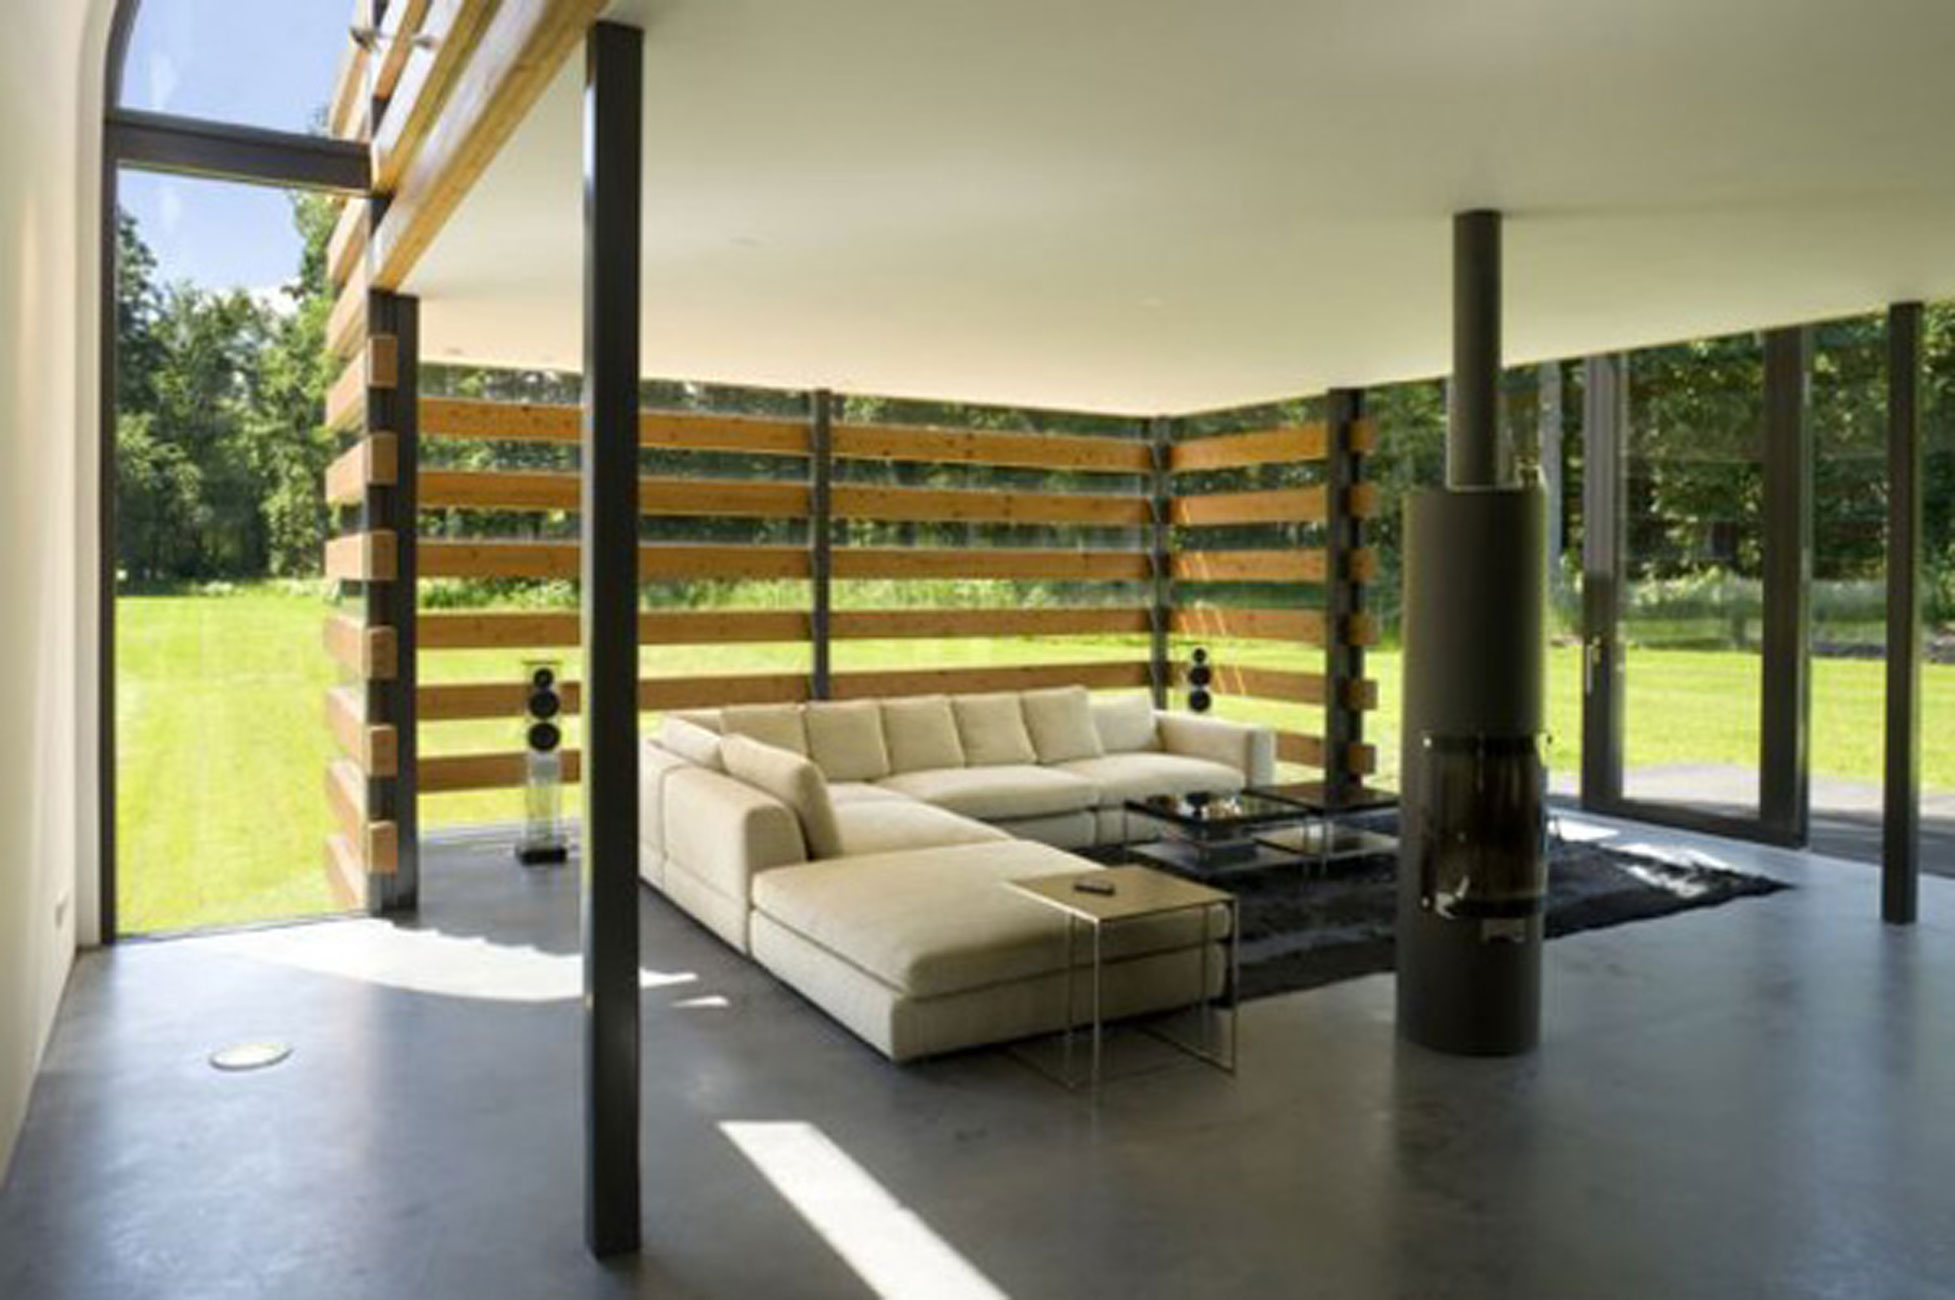 Redesigned Barn House Into Modern House Design With Metal Roof Living Room